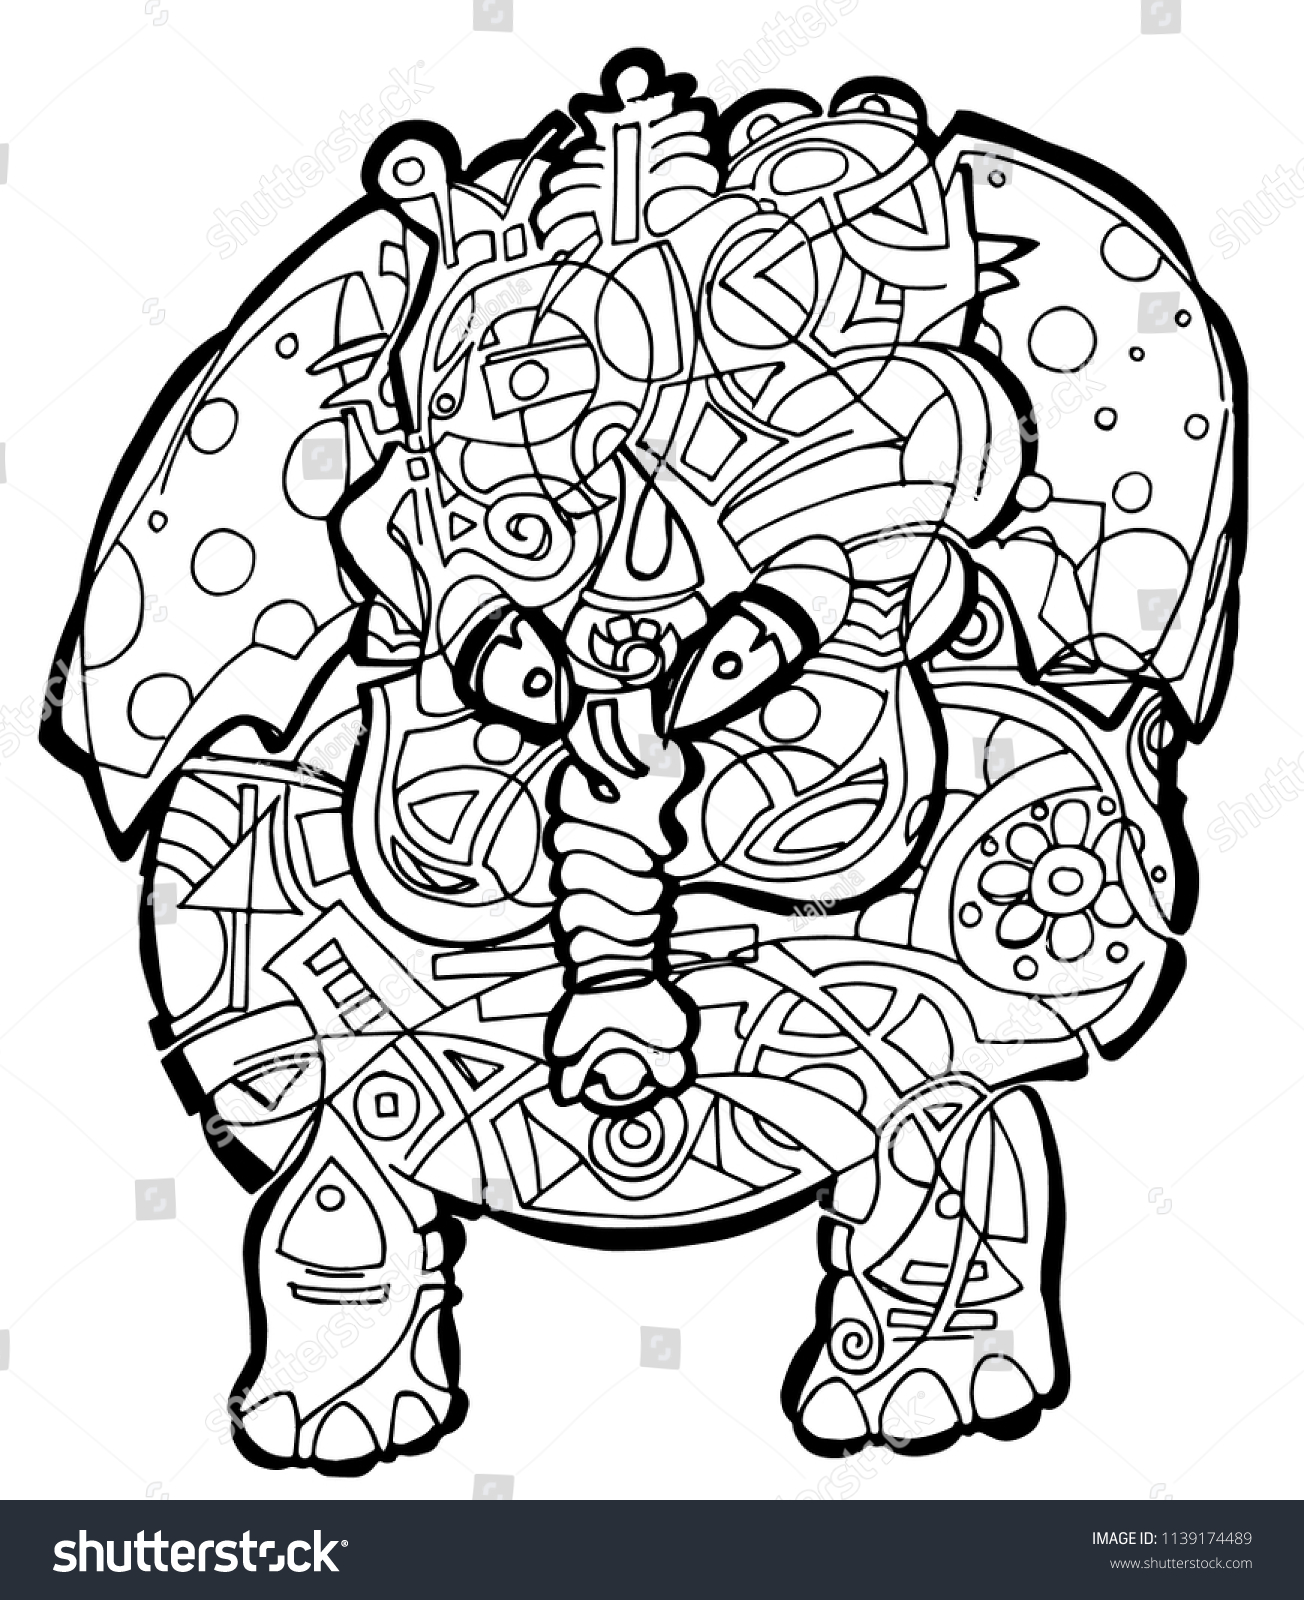 Abstract Elephant Coloring Pages - GetColoringPages.com | 1600x1304